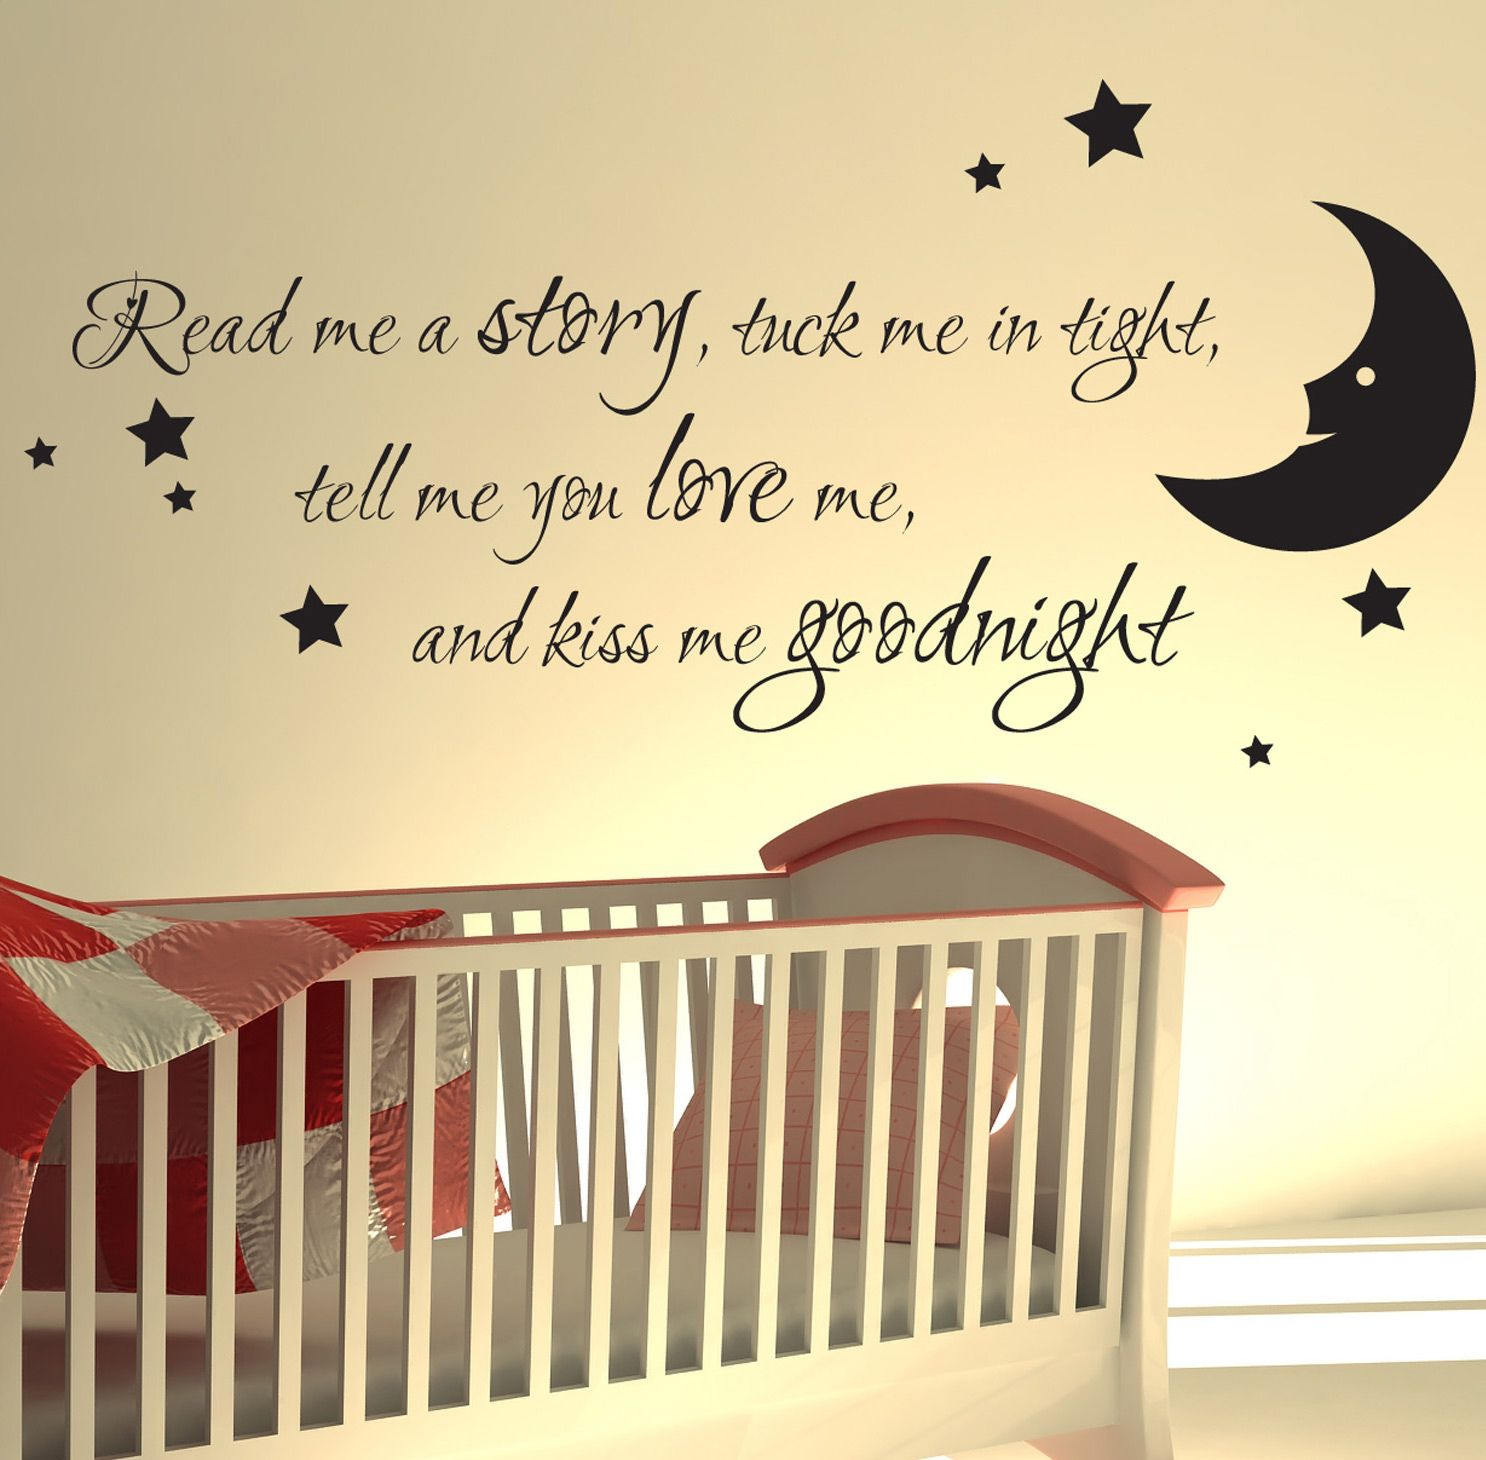 77 Baby Room Wall Art Stickers Ideas For Decorating A Bedroom